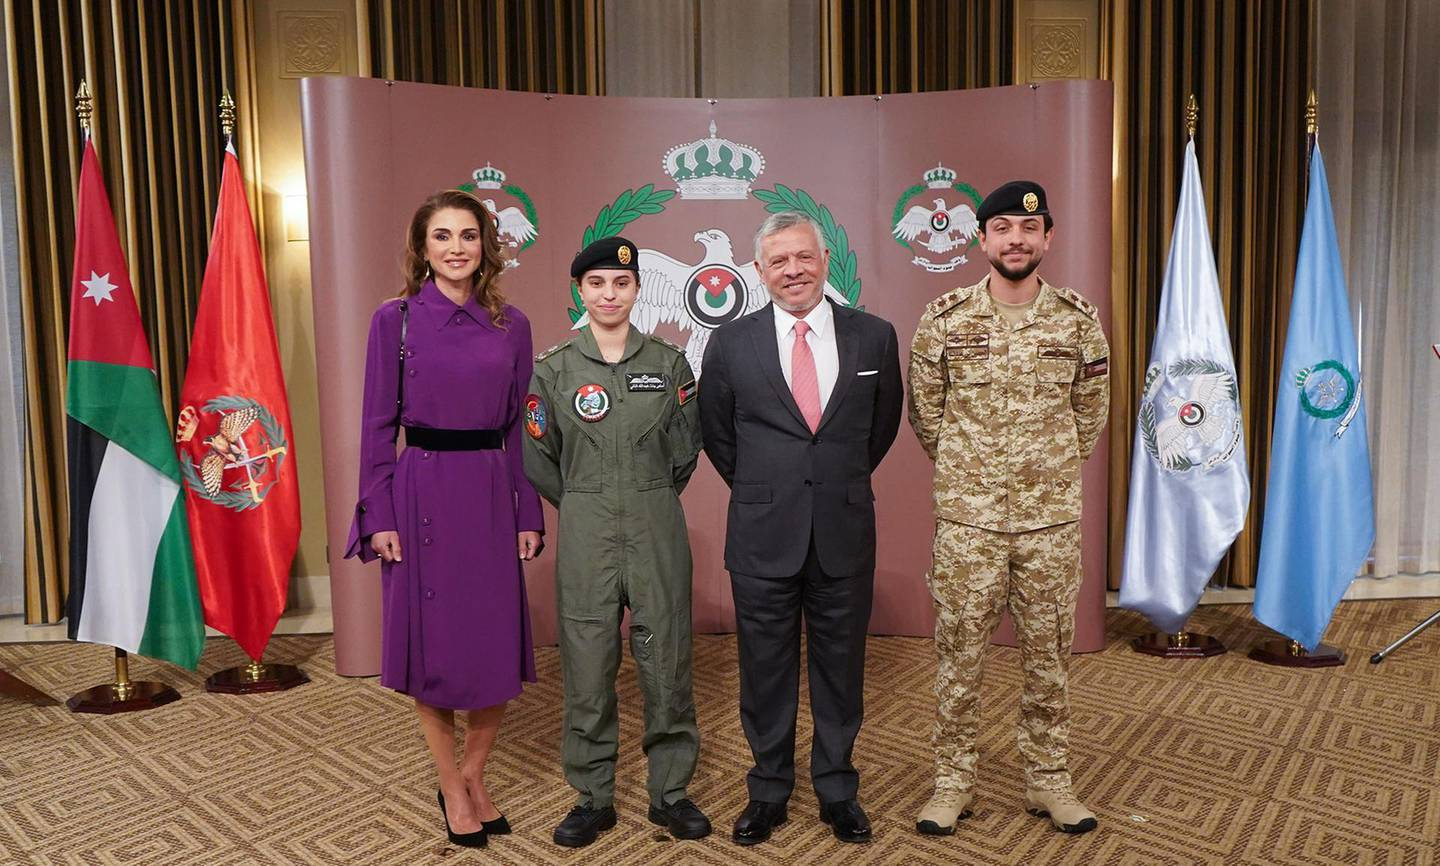 """A handout picture released by the Jordanian Royal Palace on January 8, 2020 shows Jordanian King Abdullah II (C-R) posing for a picture with his son Crown Prince Hussein (R) and his wife Queen Rania (L) after presenting his daughter Princess Salma bint Abdullah (C-L) with her wings for completing her pilot training in the capital Amman.  - RESTRICTED TO EDITORIAL USE - MANDATORY CREDIT """"AFP PHOTO / JORDANIAN ROYAL PALACE / YOUSEF ALLAN"""" - NO MARKETING NO ADVERTISING CAMPAIGNS - DISTRIBUTED AS A SERVICE TO CLIENTS  / AFP / Jordanian Royal Palace / Yousef ALLAN / RESTRICTED TO EDITORIAL USE - MANDATORY CREDIT """"AFP PHOTO / JORDANIAN ROYAL PALACE / YOUSEF ALLAN"""" - NO MARKETING NO ADVERTISING CAMPAIGNS - DISTRIBUTED AS A SERVICE TO CLIENTS"""